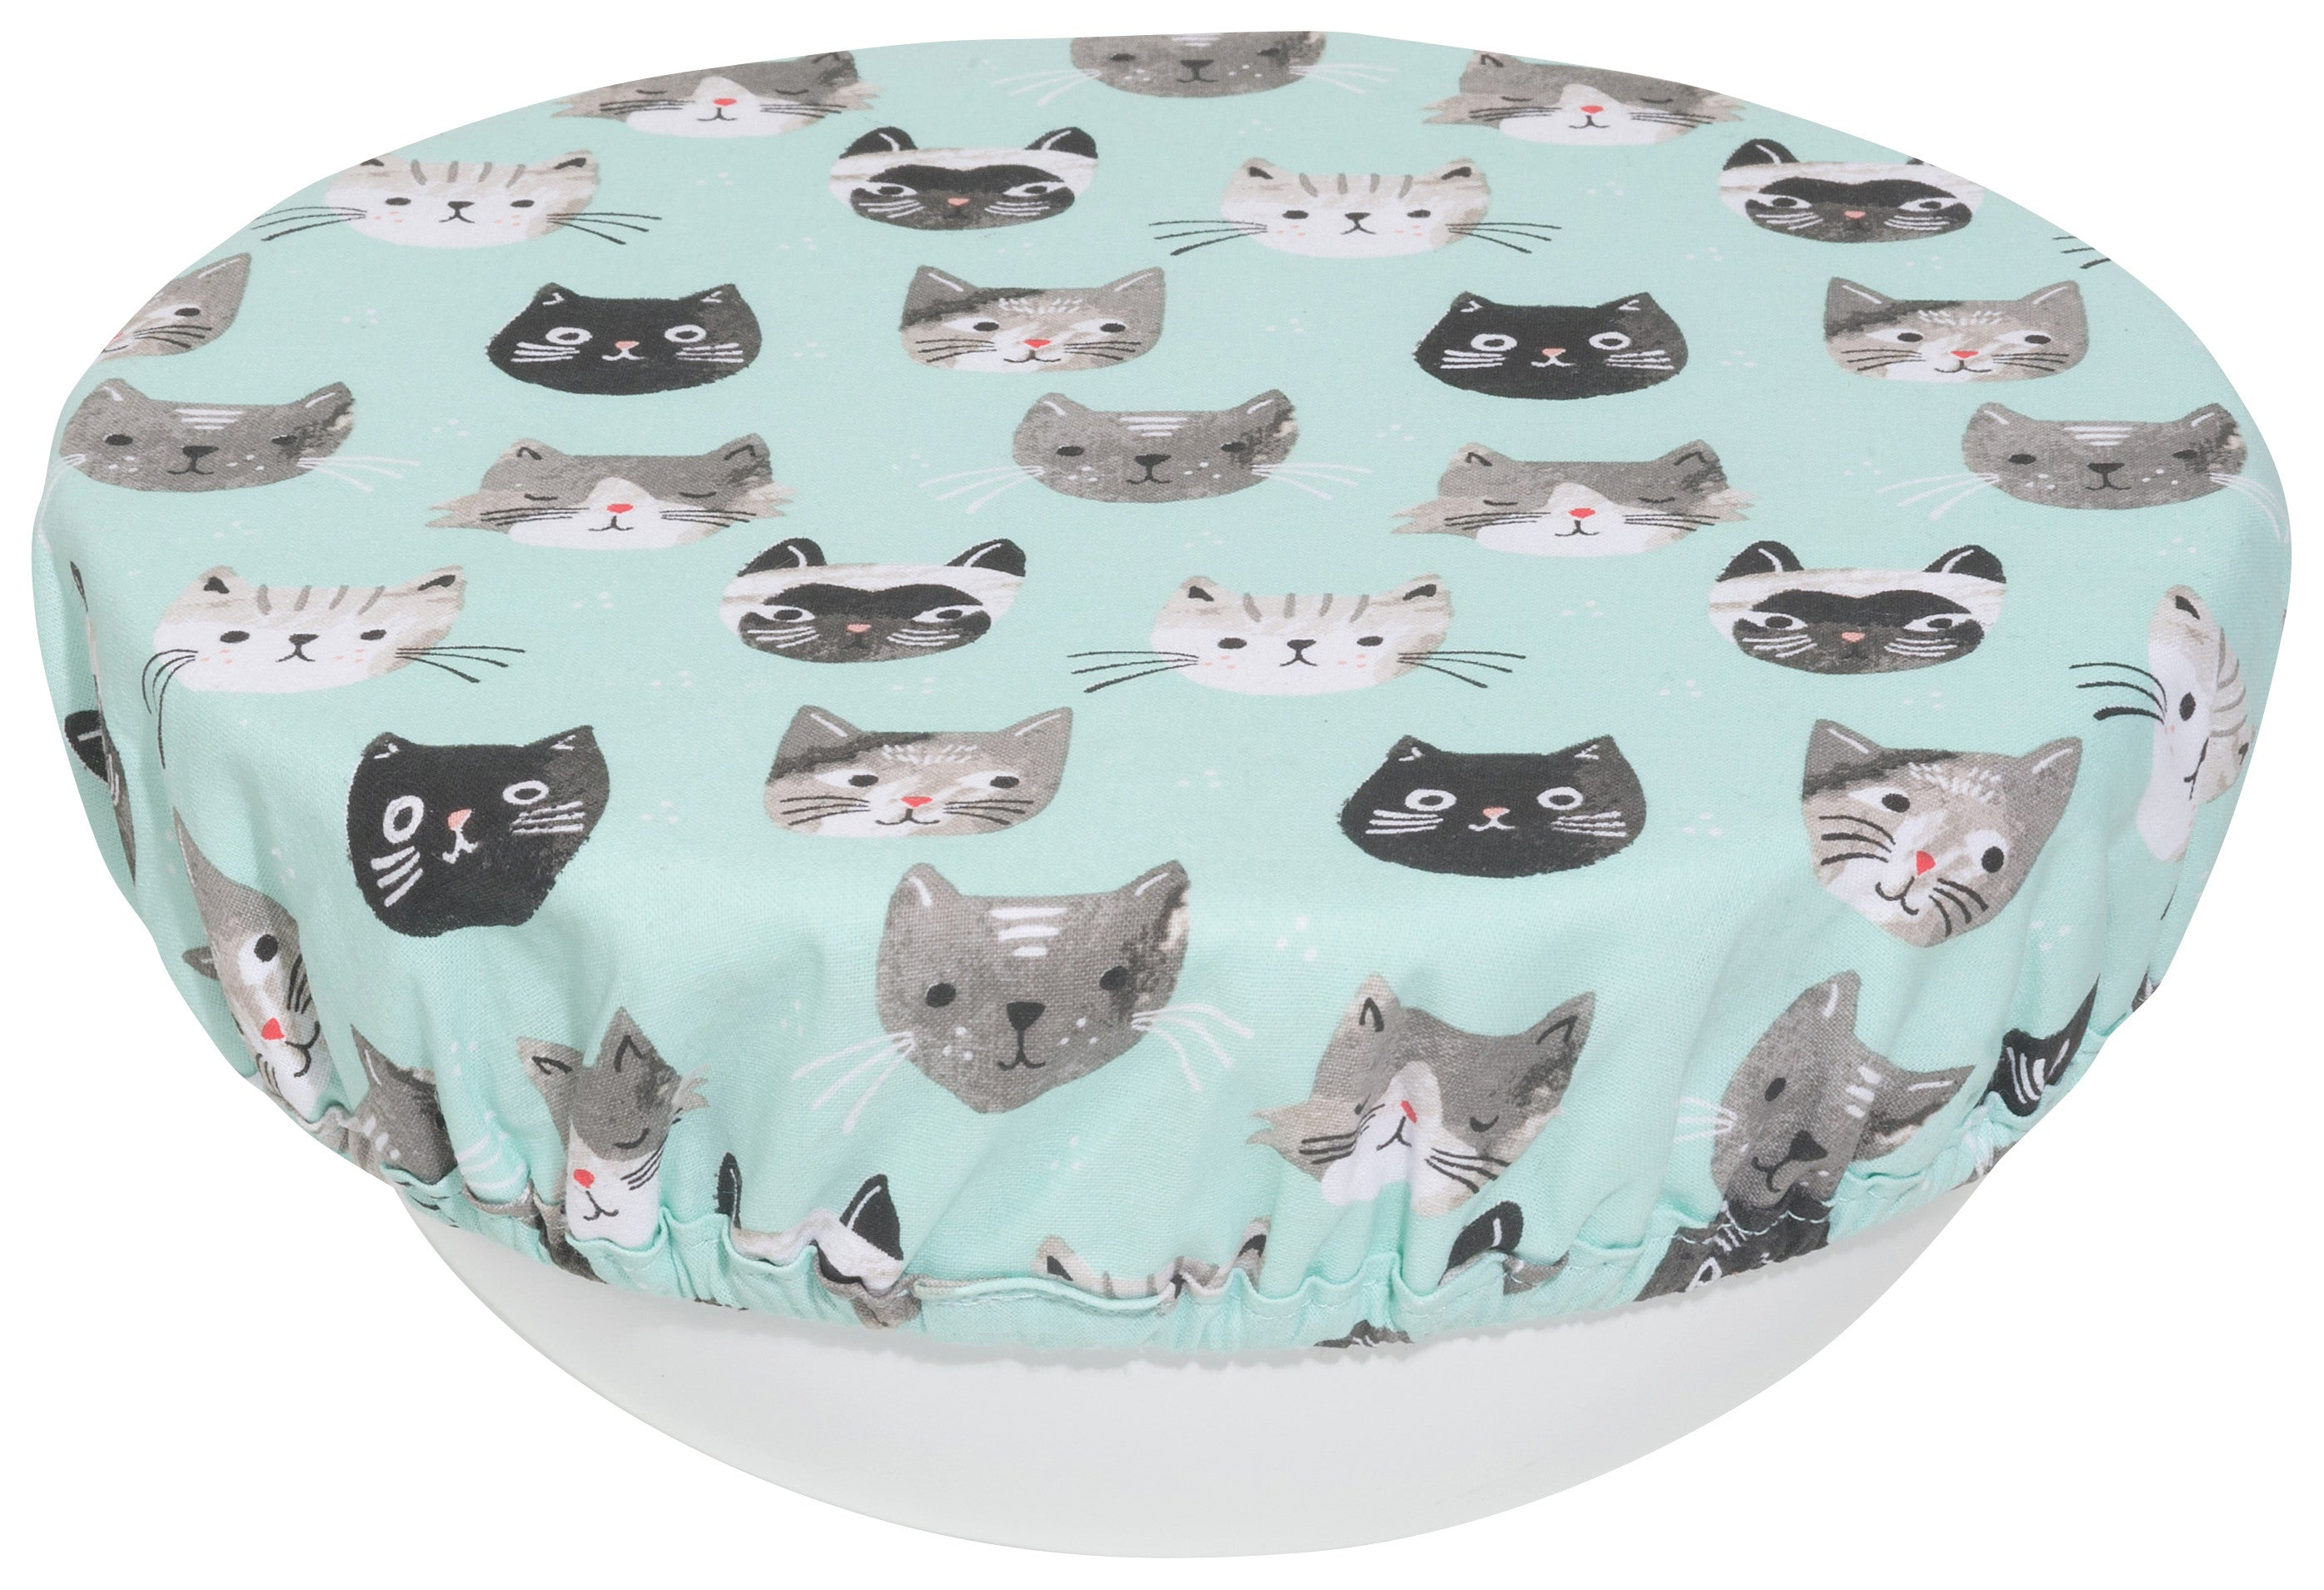 Bowl Covers: Set of Two - Cat's Meow